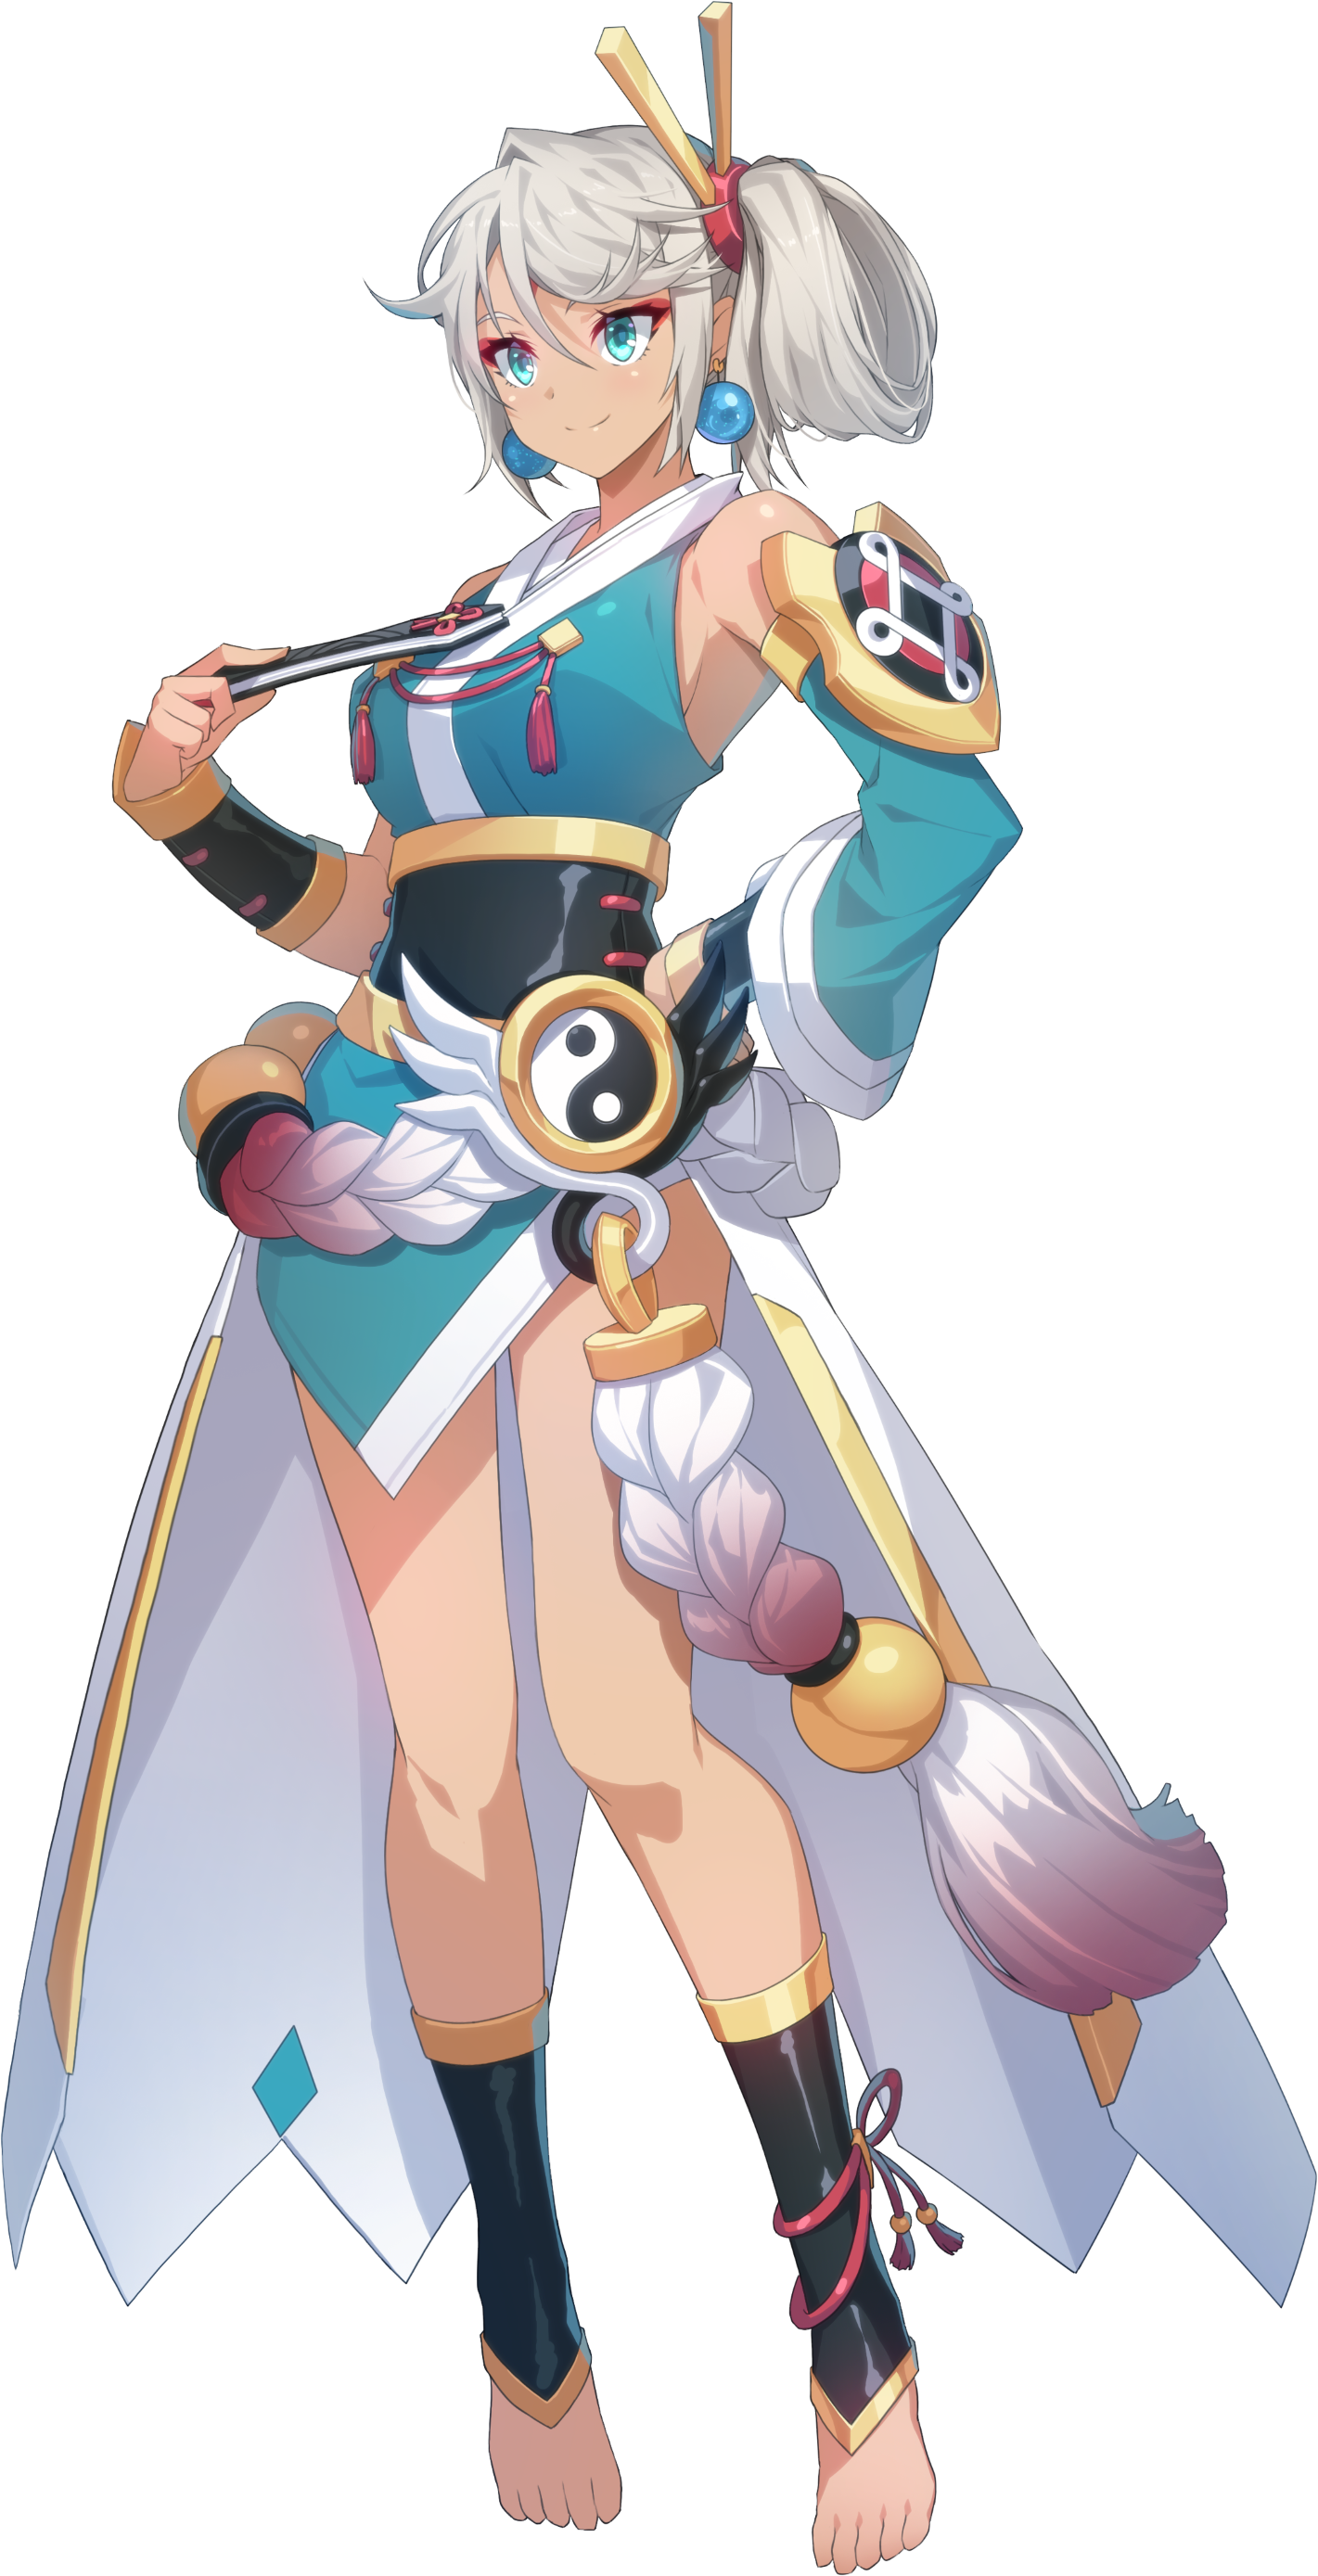 Rin/Grand Chase Dimensional Chaser | Grand Chase Wiki